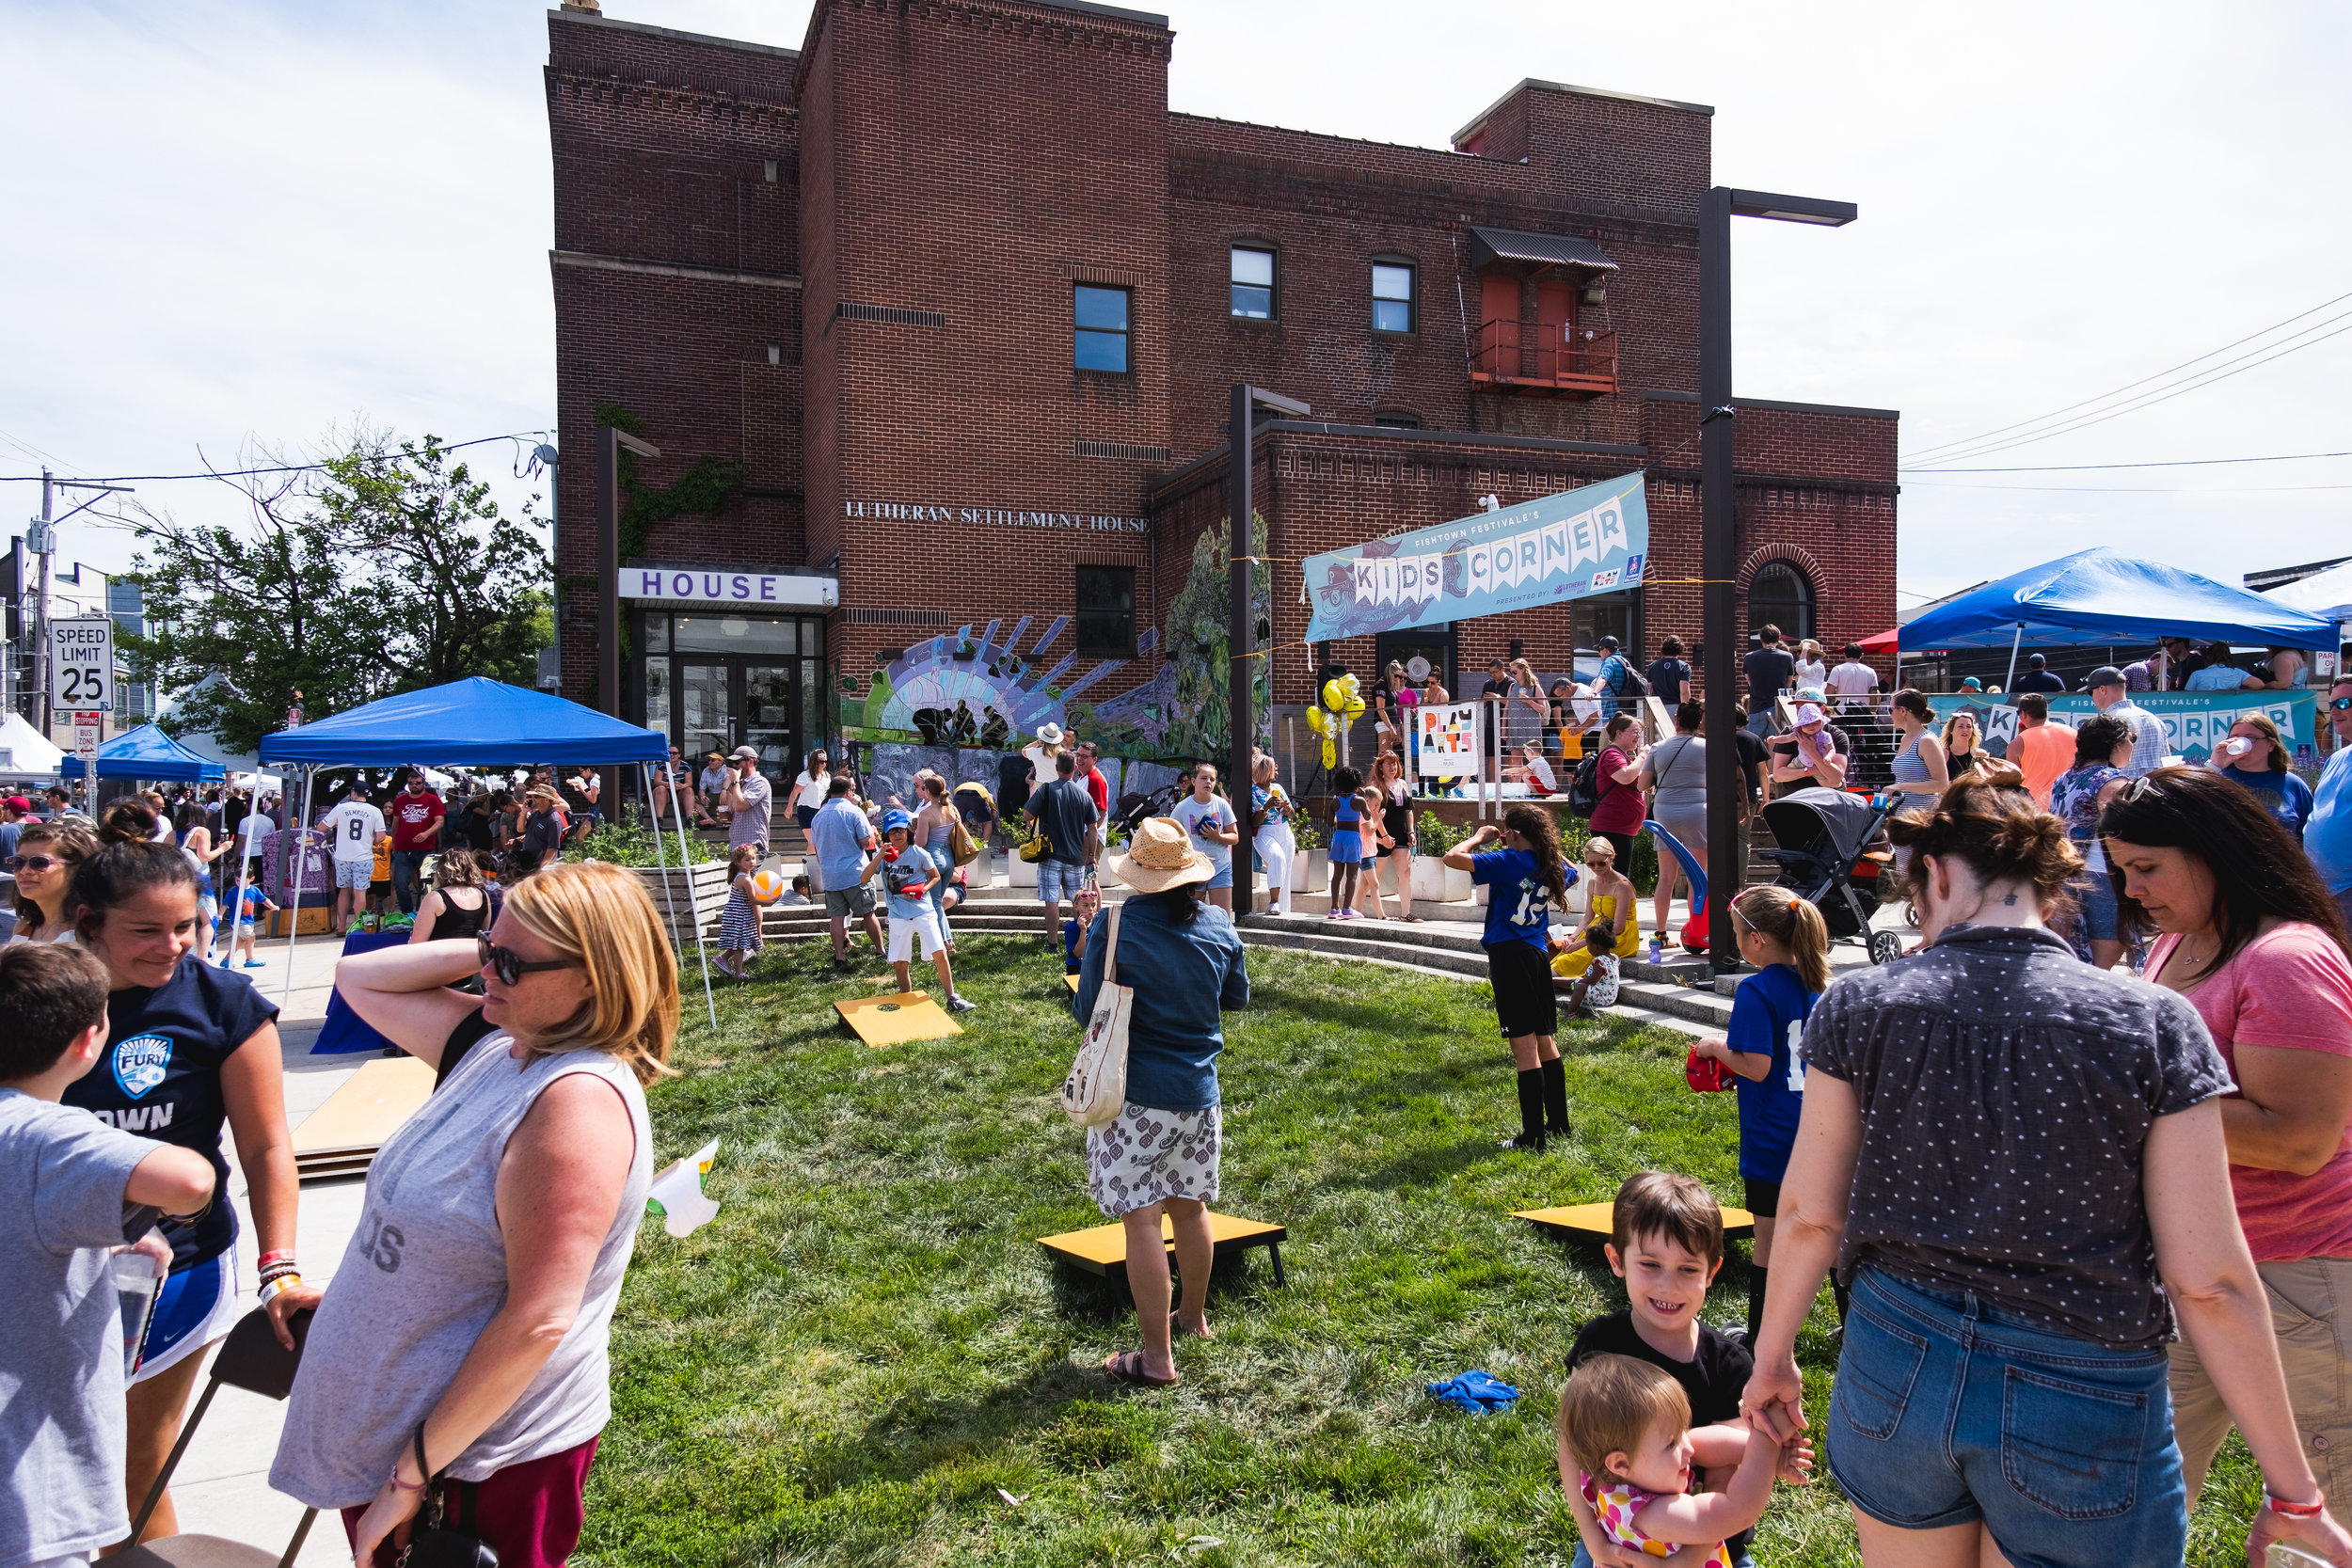 2019_PHILLY BEER WEEK_FISHTOWN FESTIVALE_EVENTS_THE PHILLY CHECKLIST-11.jpg